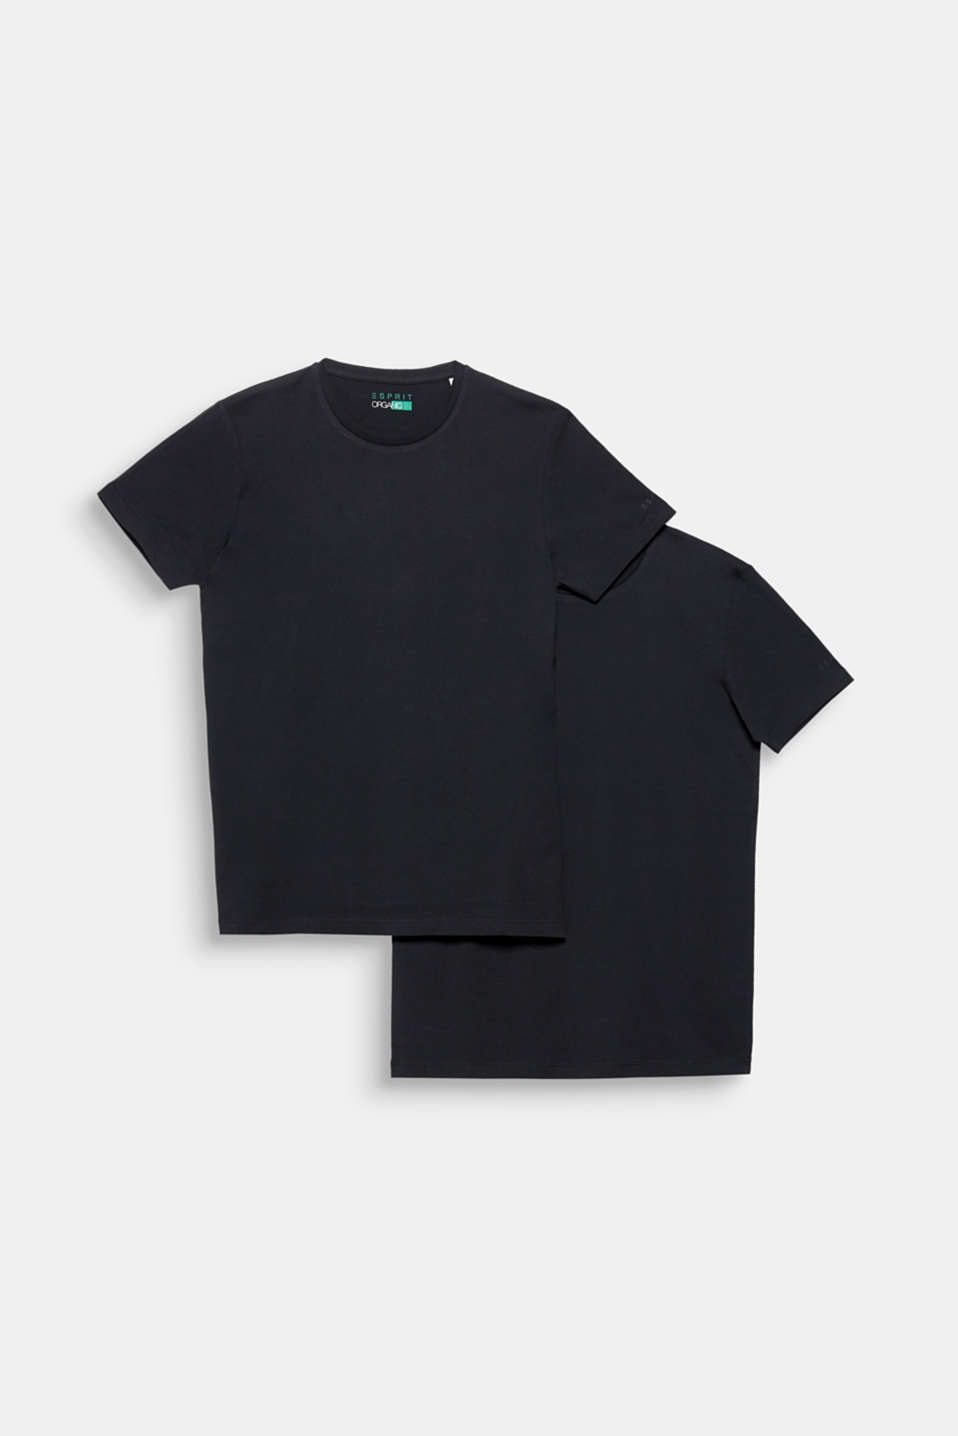 Double pack of jersey tees containing organic cotton, BLACK, detail image number 6